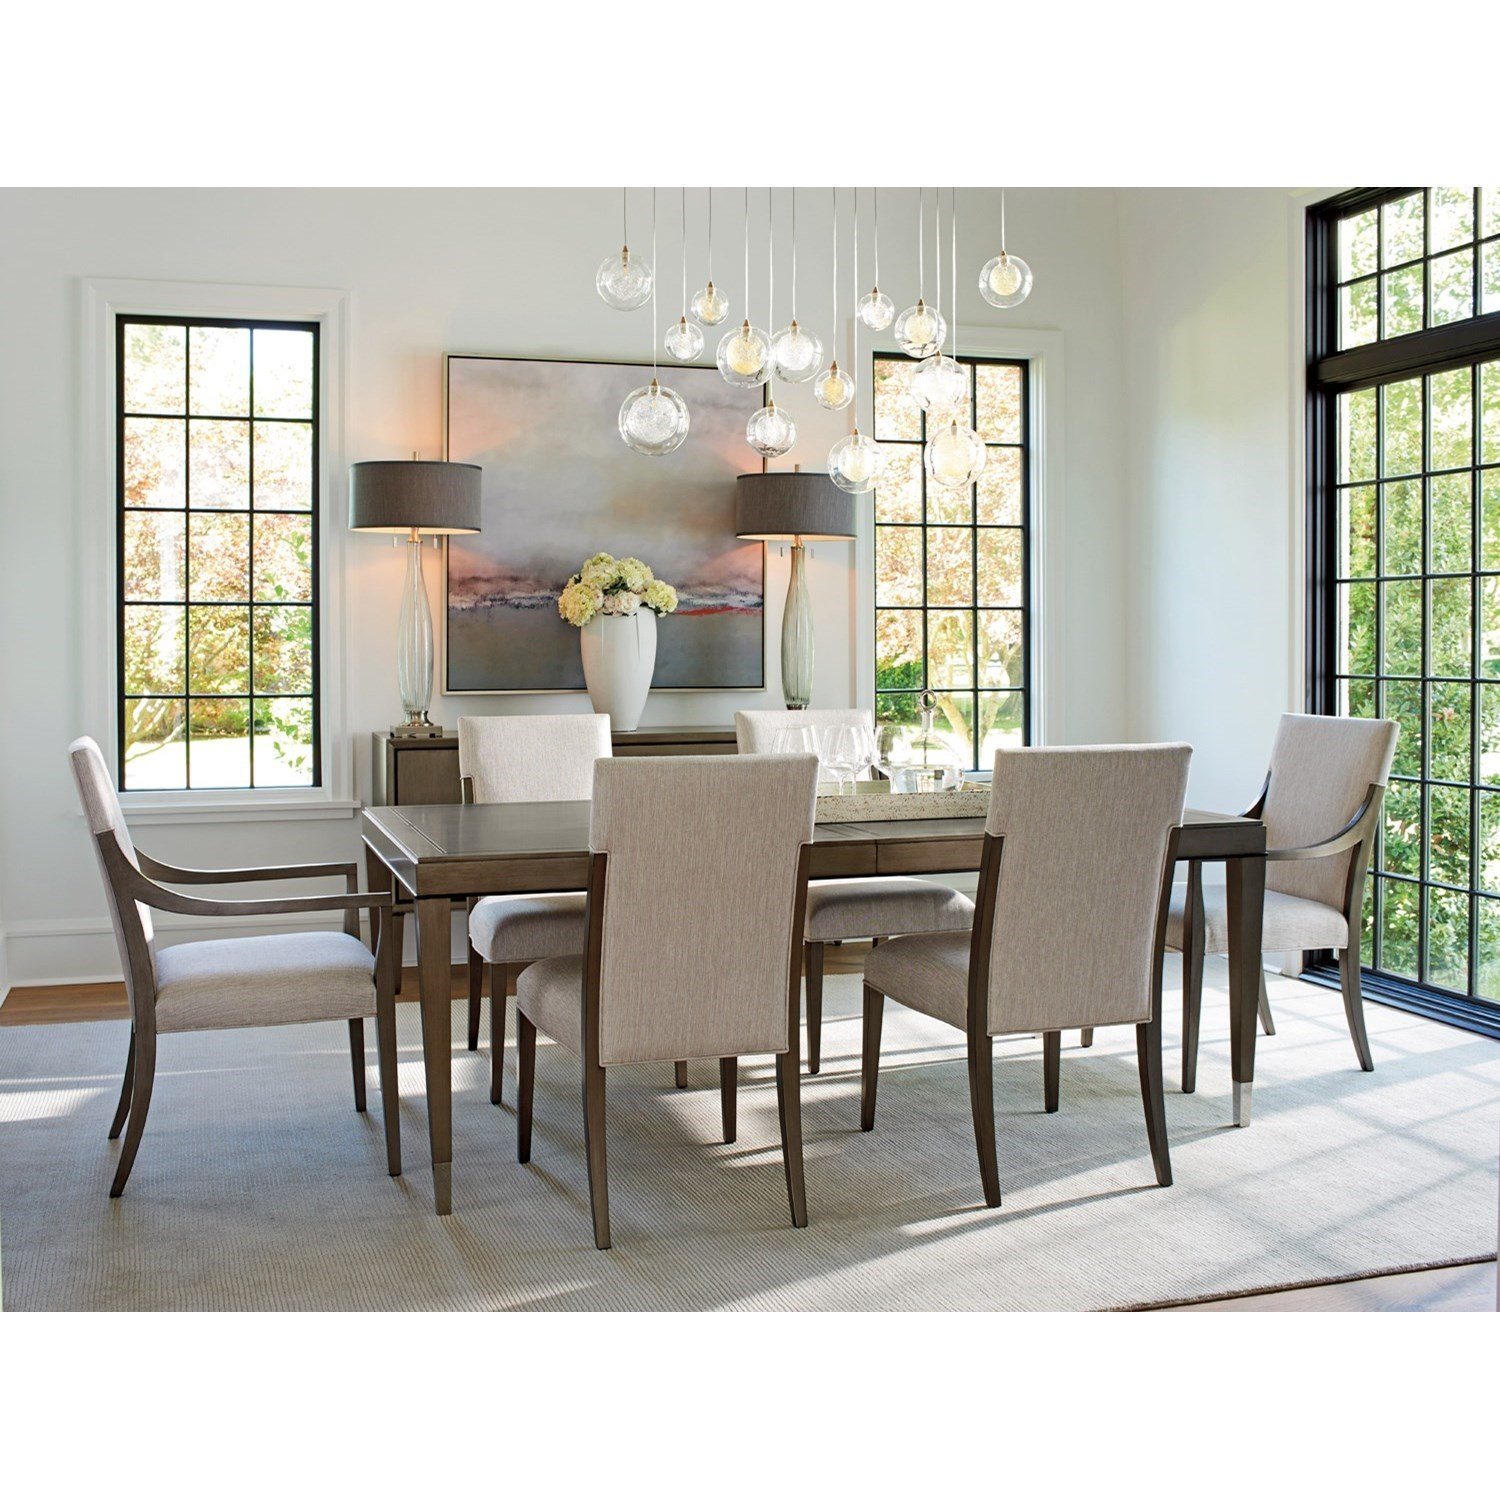 Superbe Ariana Chateau Rectangular Dining Table With Table Extension Leaves By  Lexington At Baeru0027s Furniture